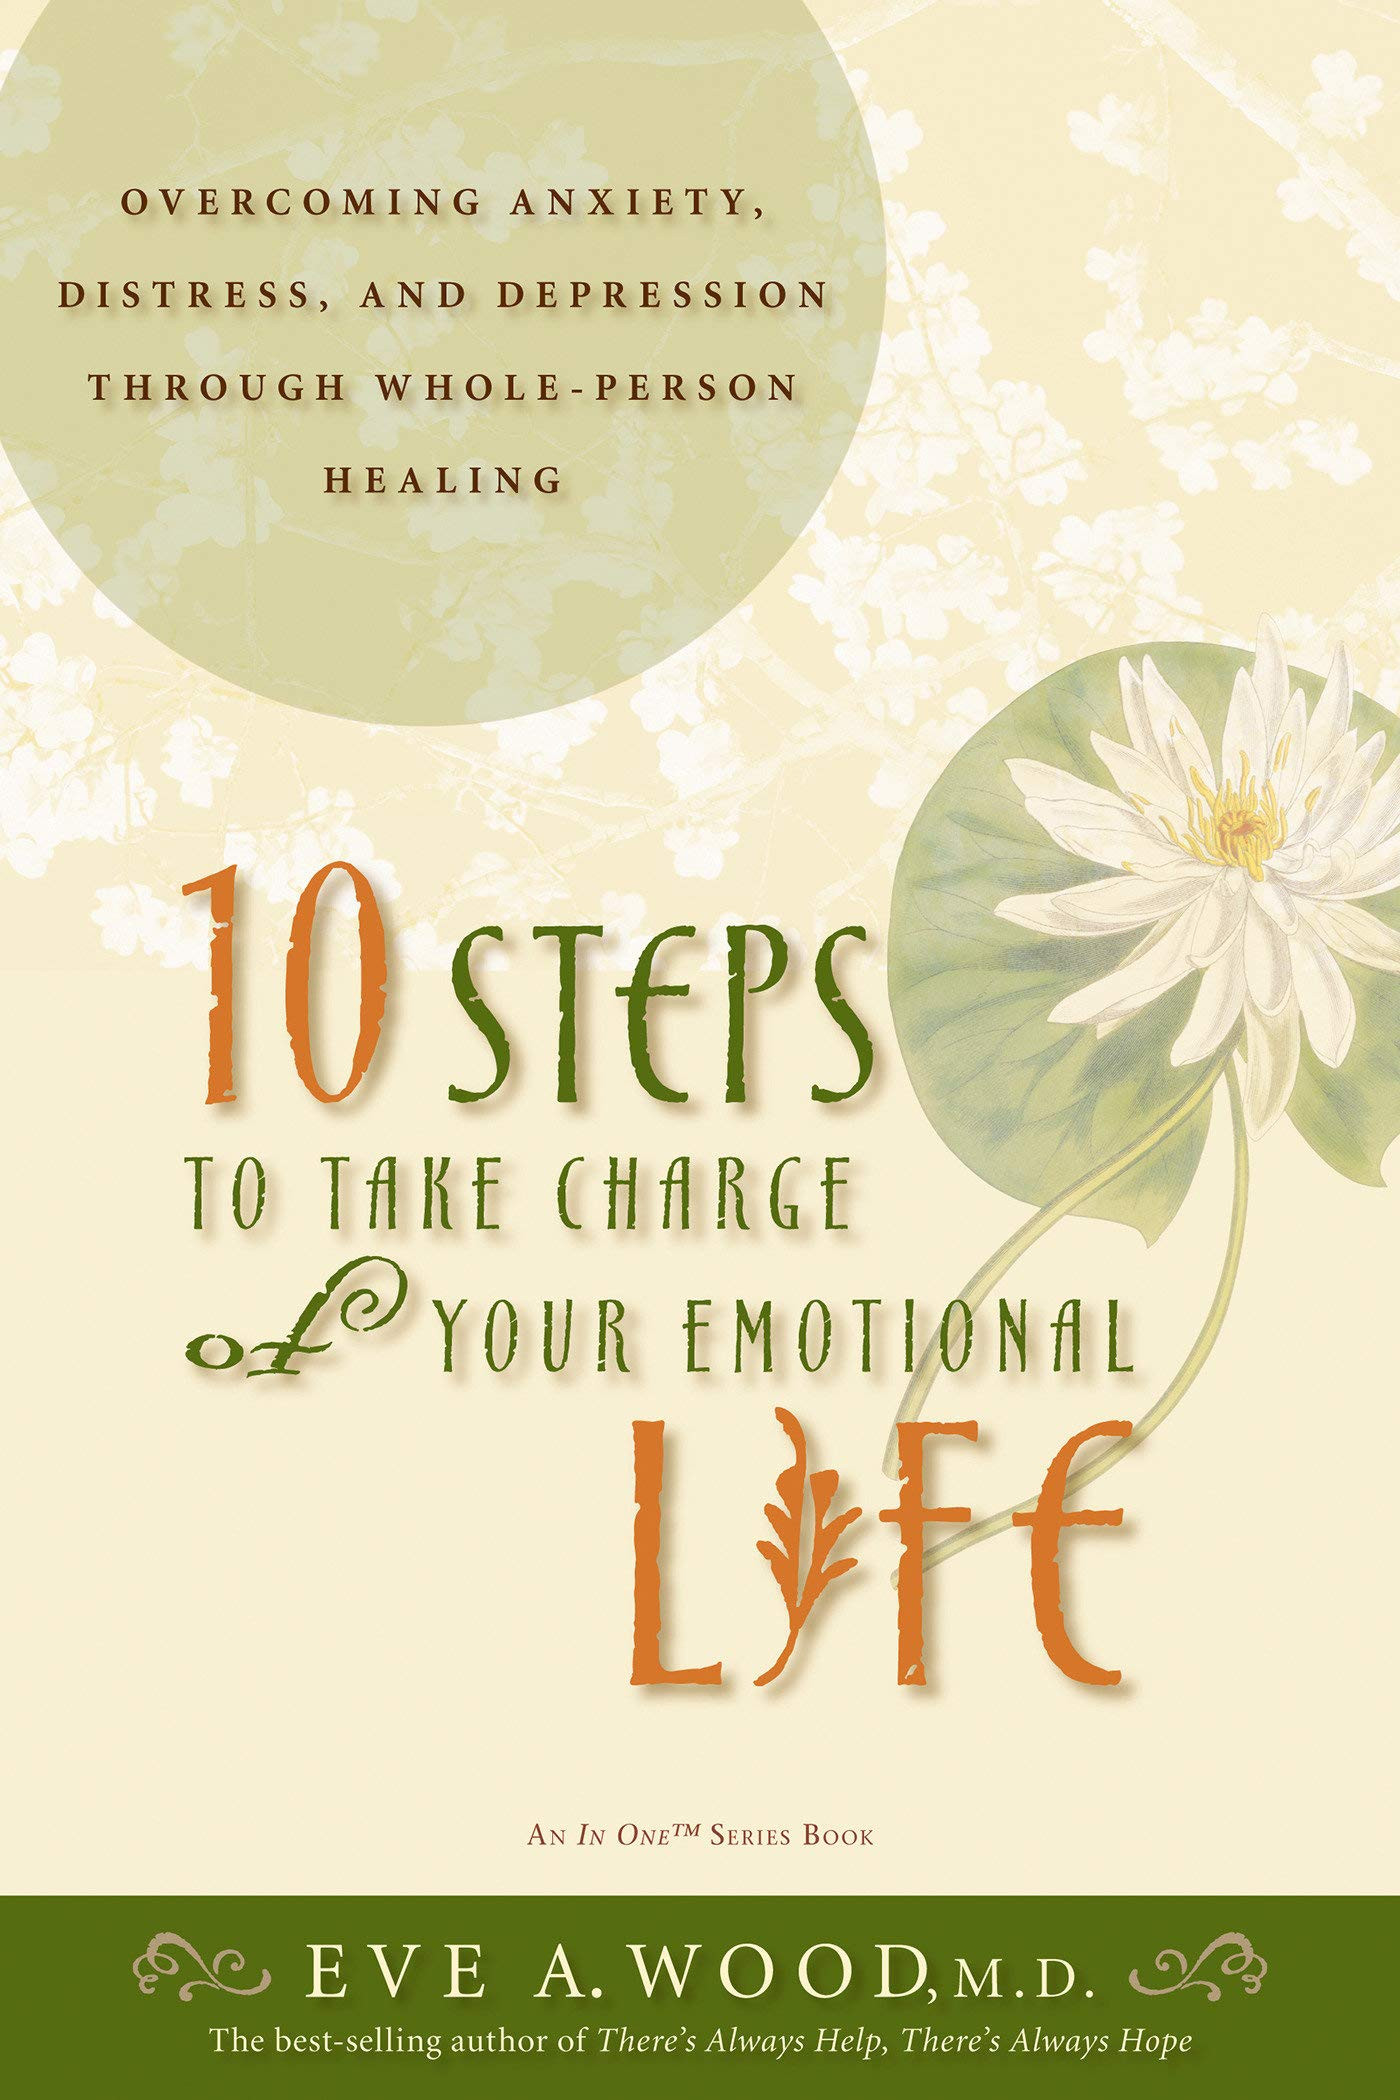 10 Steps to Take Charge of Your Emotional Life Over ing Anxiety Distress and Depression Through Whole Person Healing In e Eve A Wood